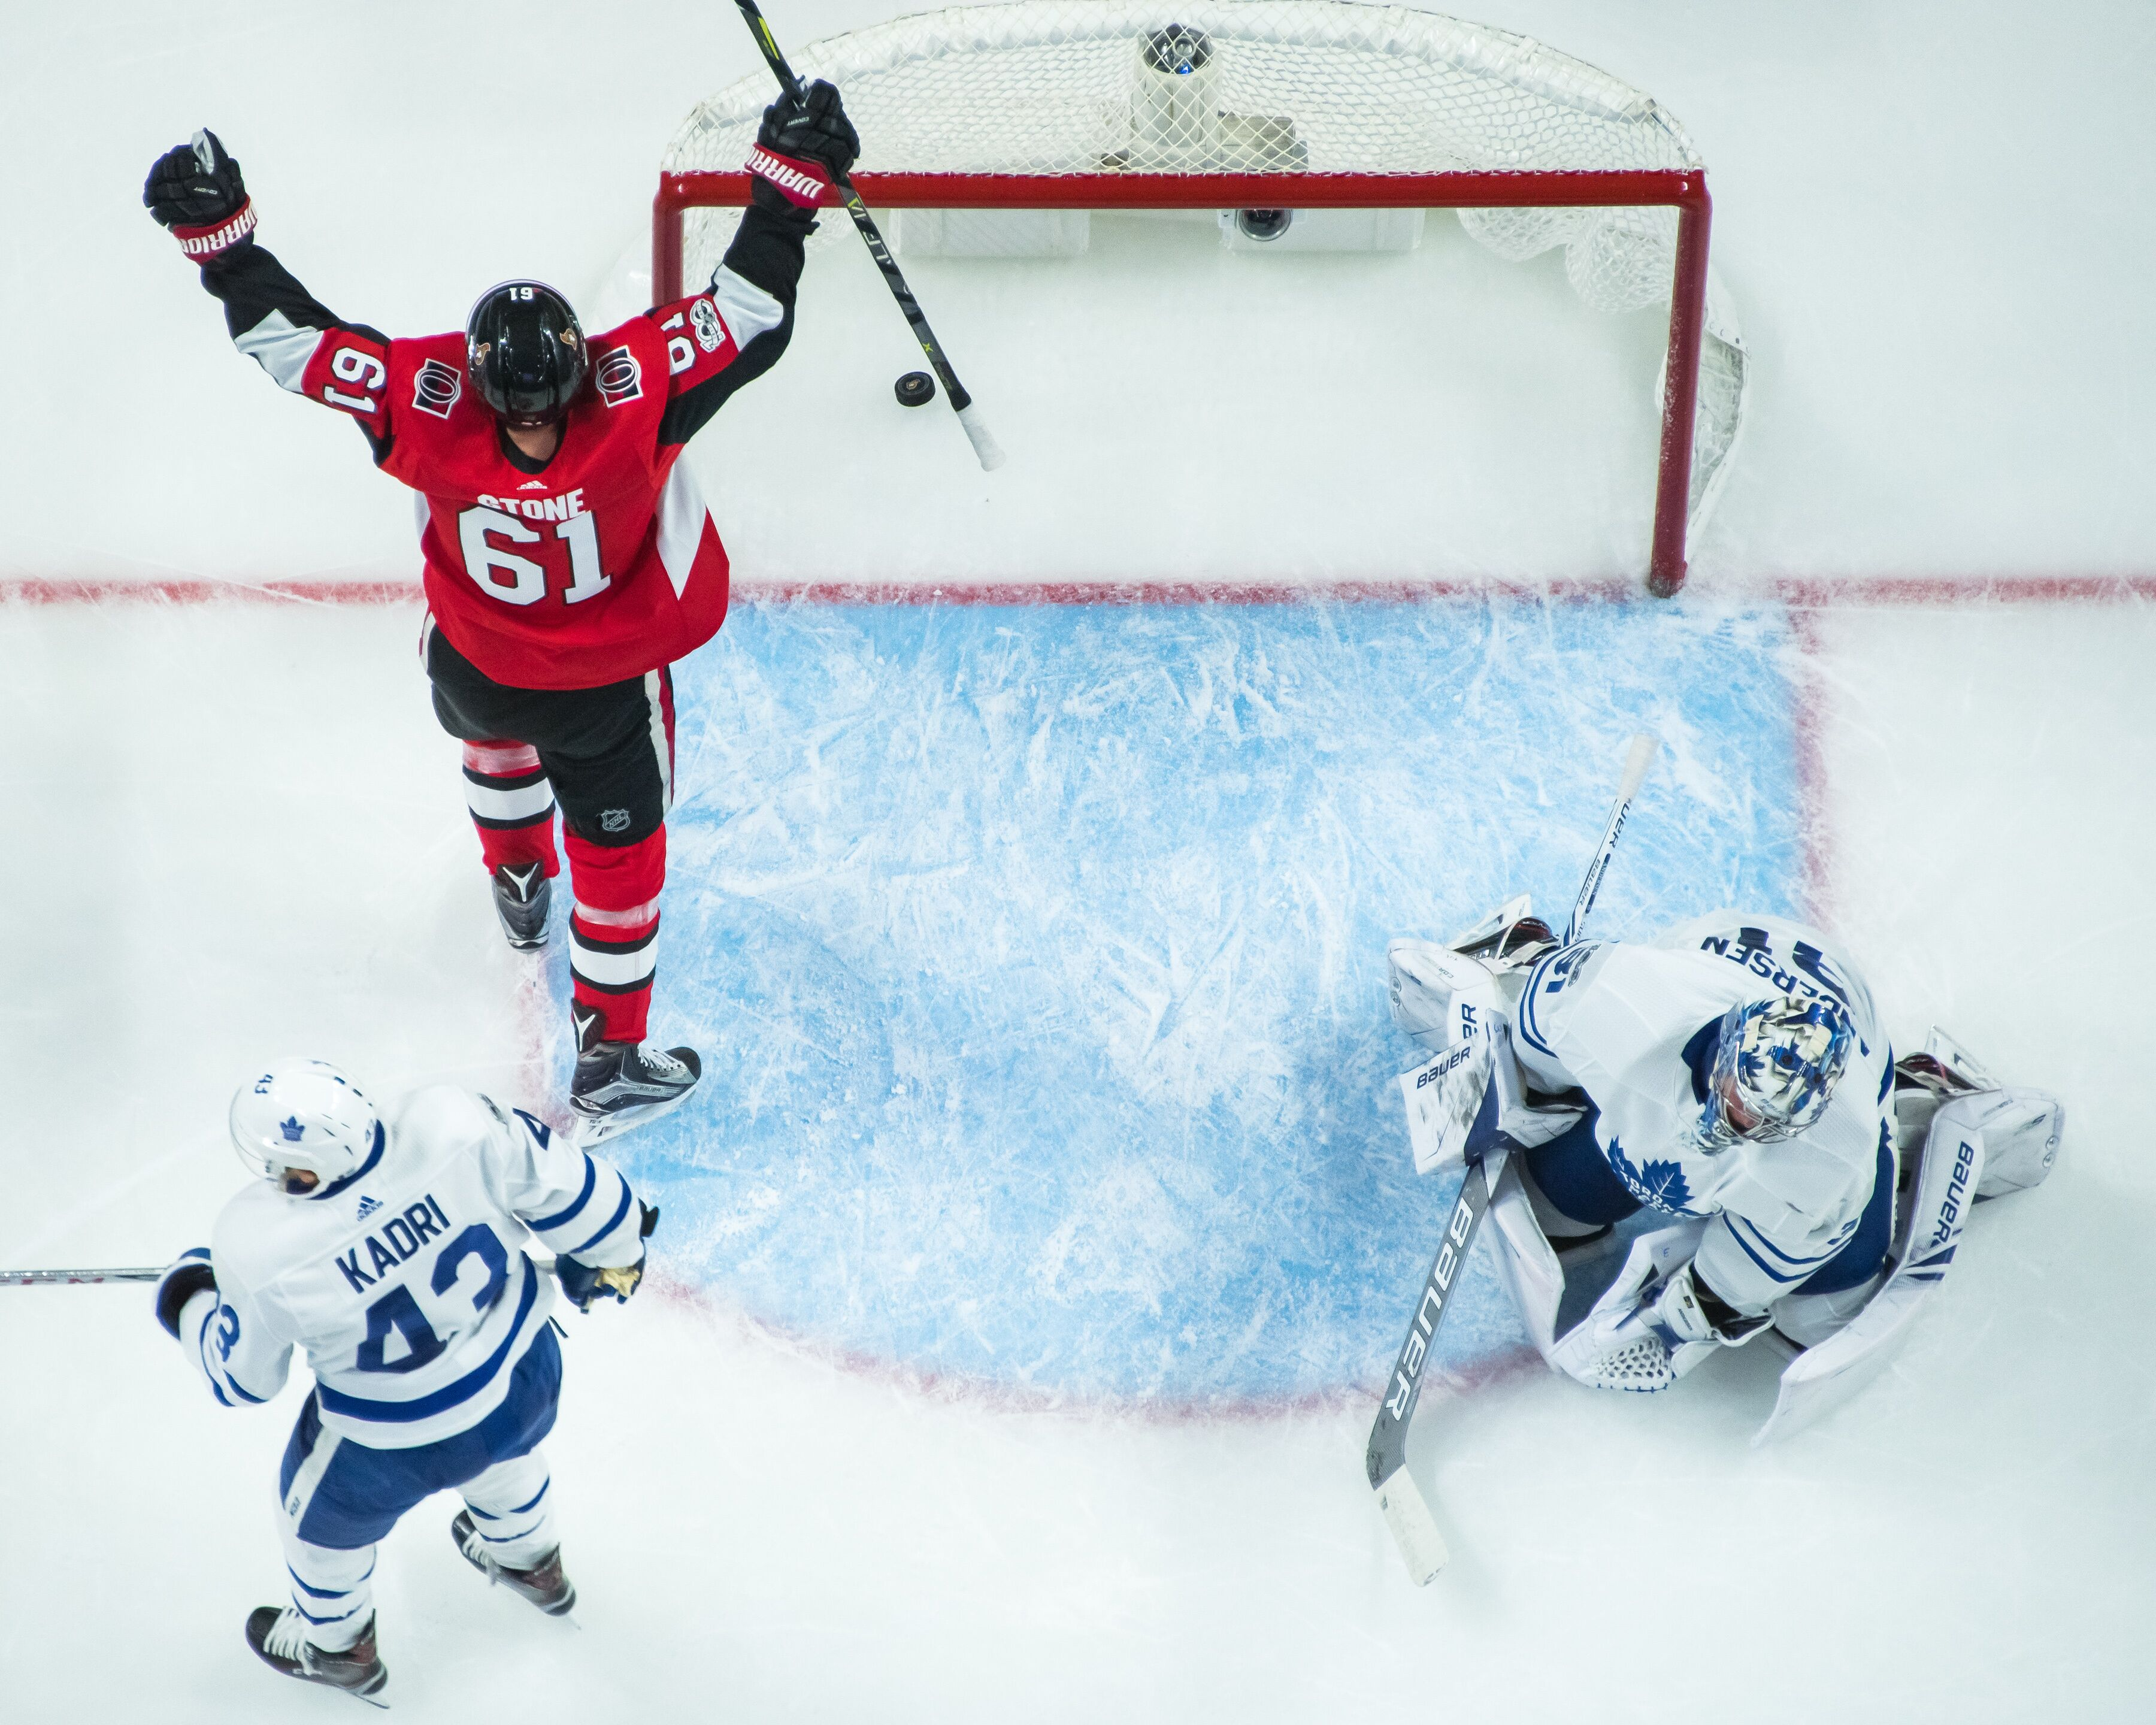 864855604-nhl-oct-21-maple-leafs-at-senators.jpg